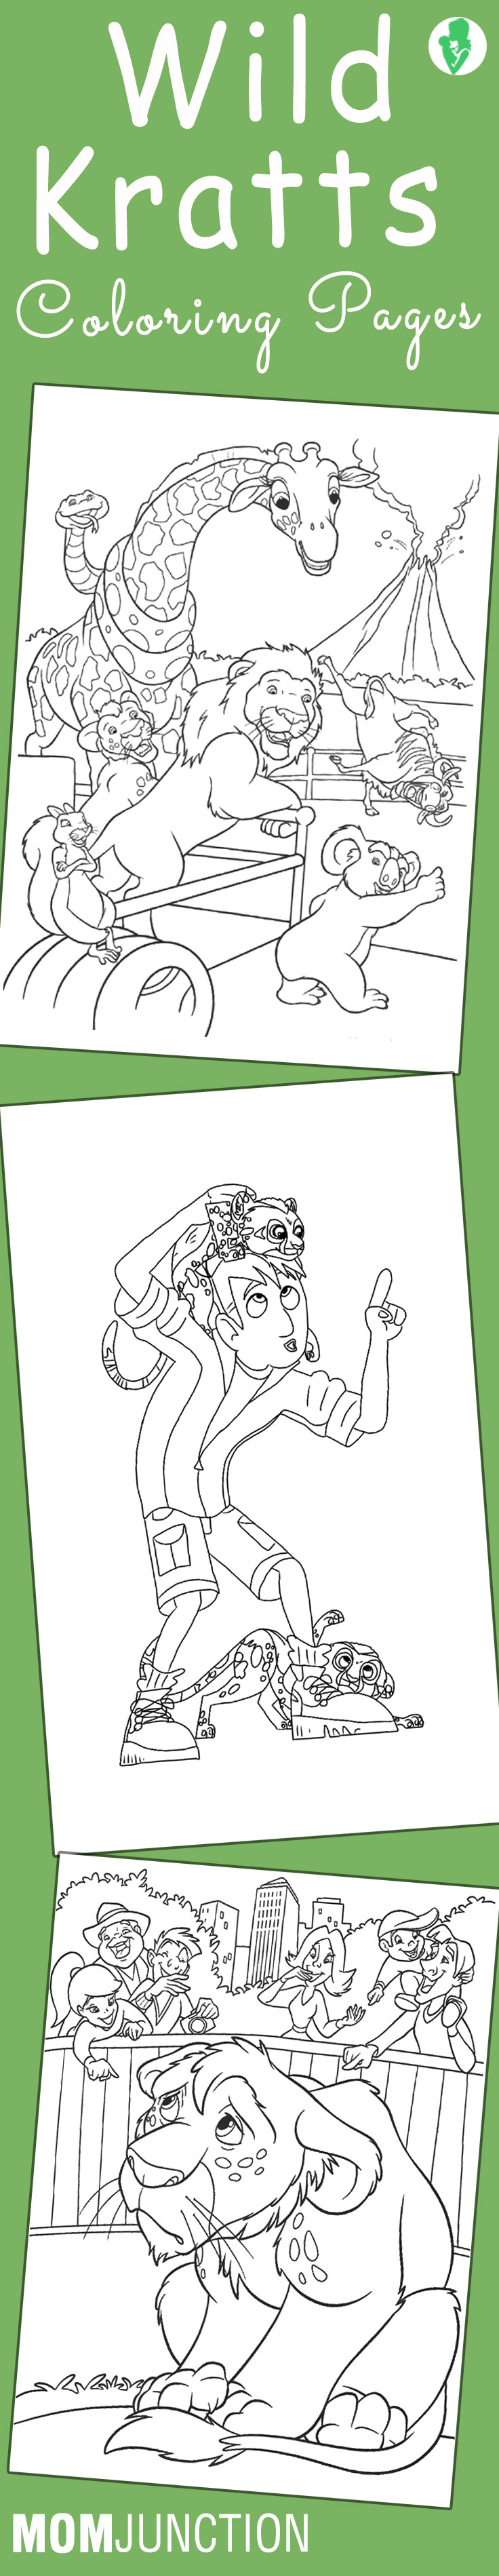 Wild Kratts Coloring Pages Free Printable Wild Kratts